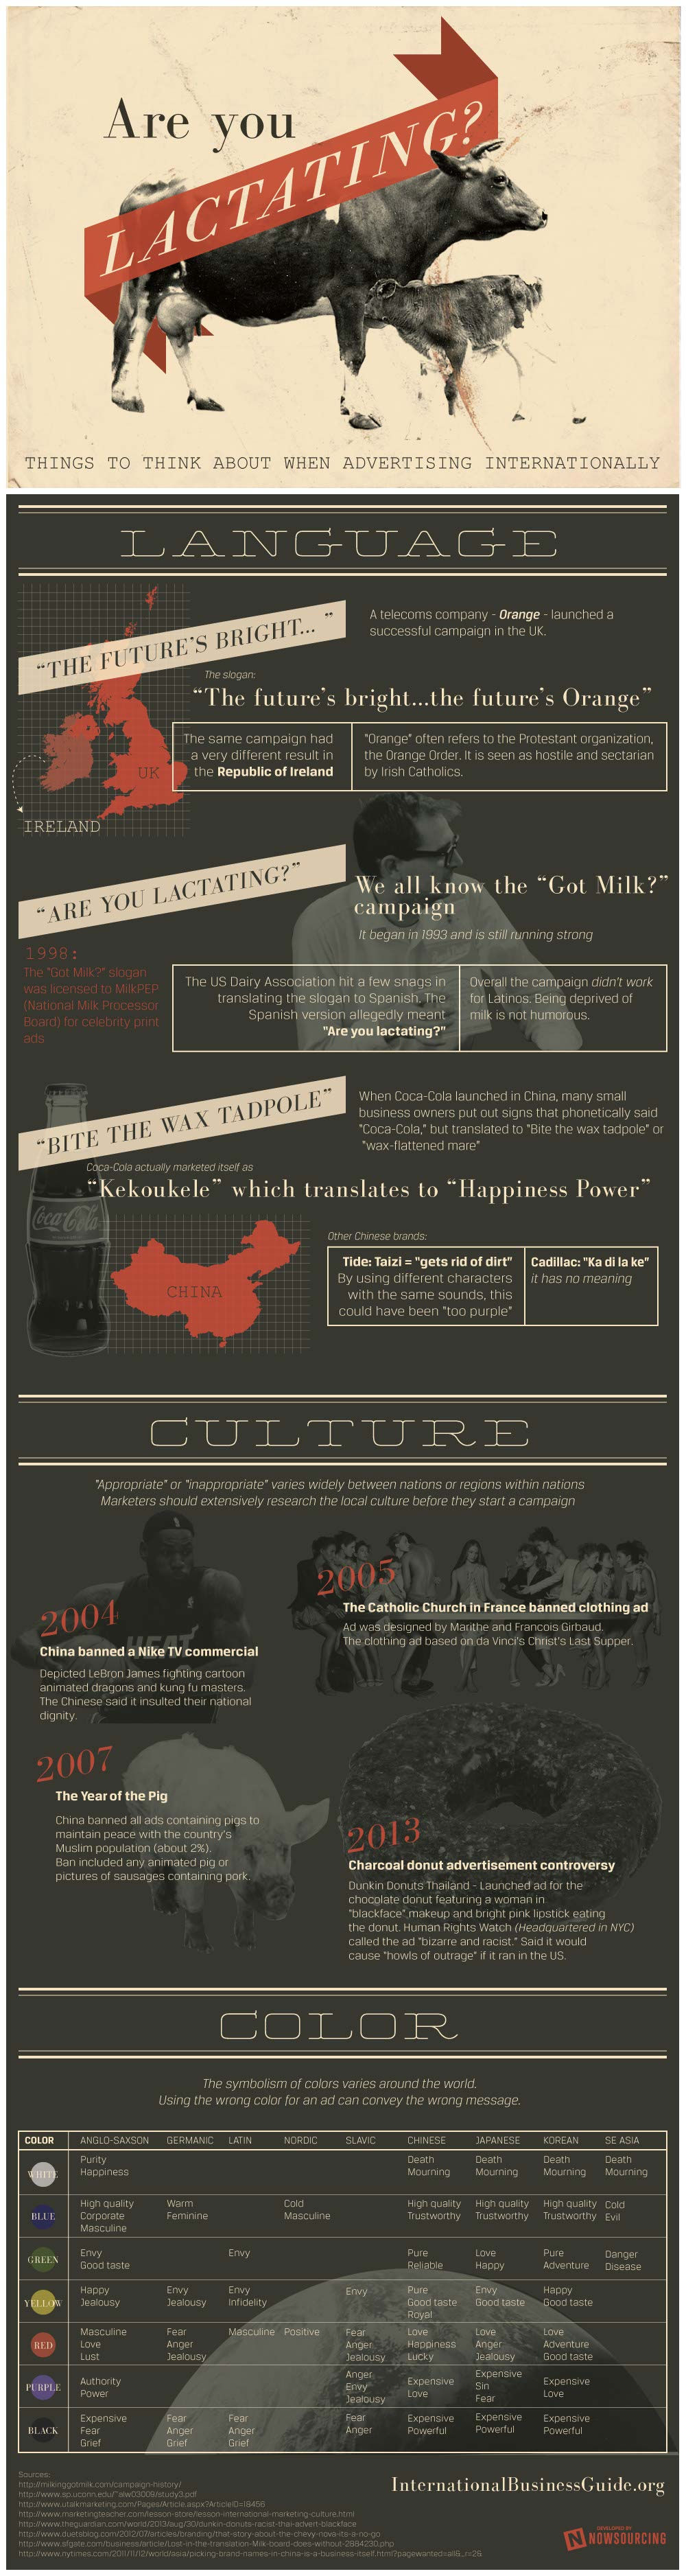 International Advertising Mistakes-Infographic